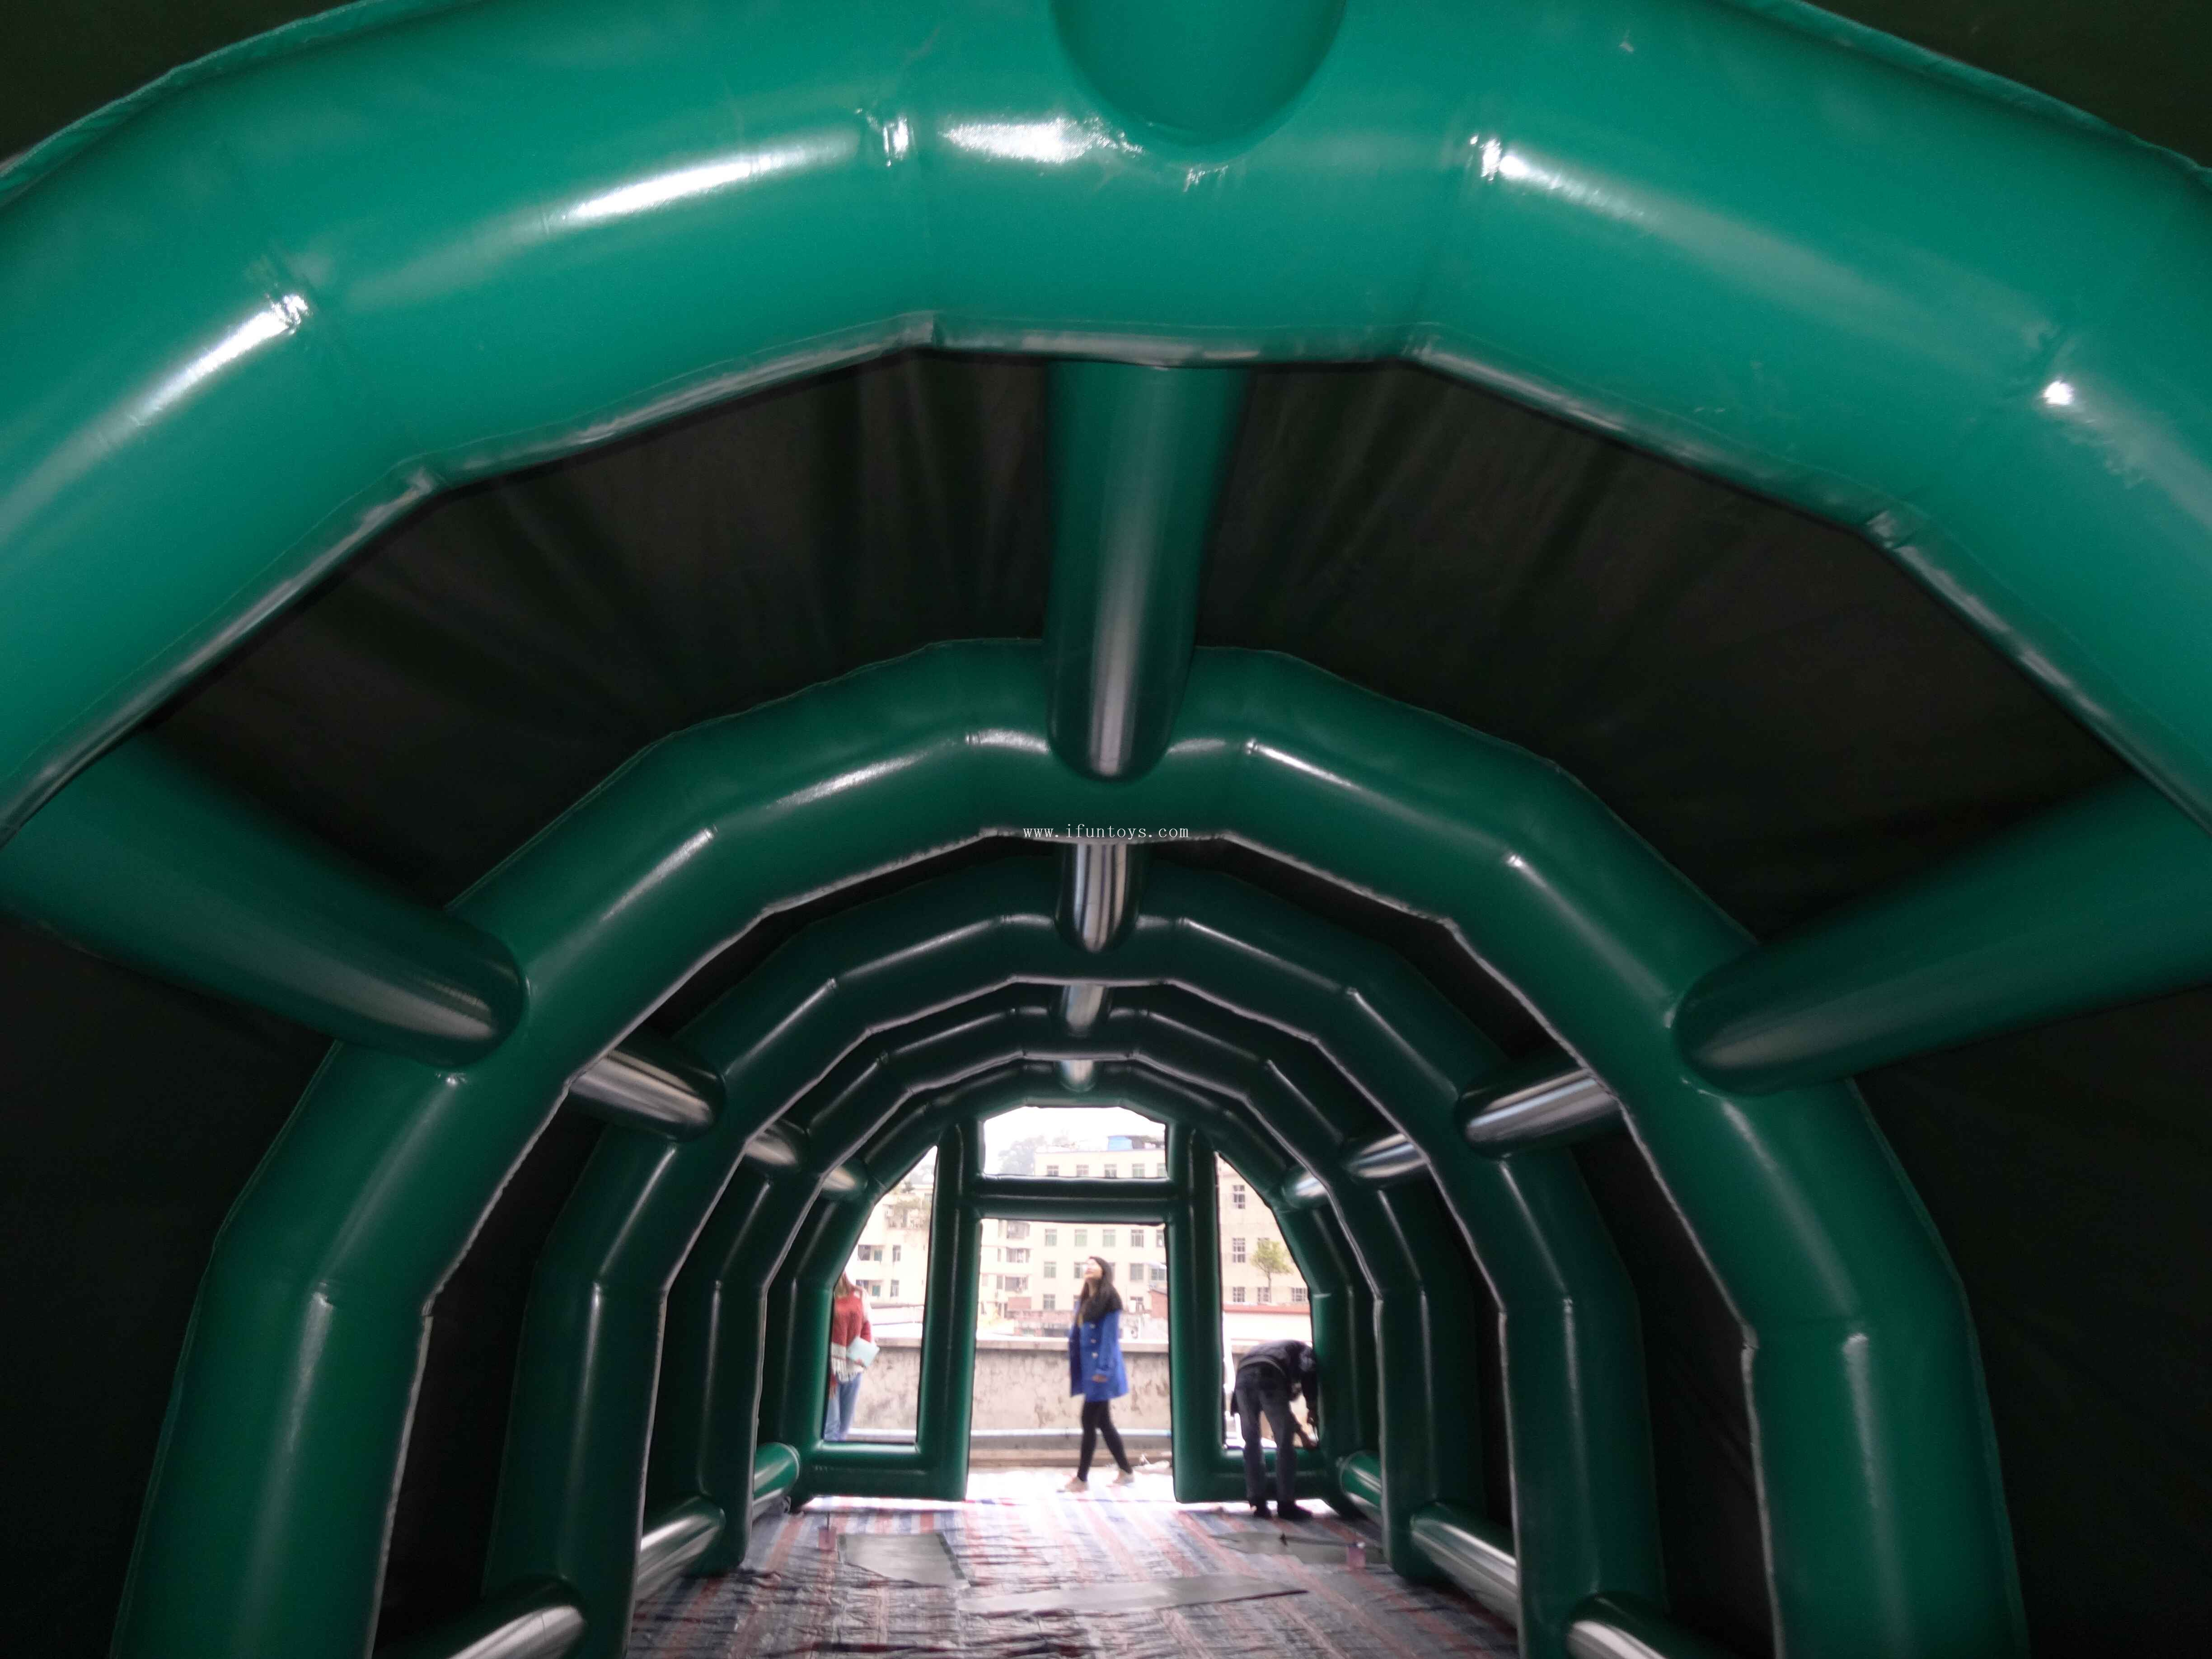 Outdoor Inflatable paintball arena/ Inflatable paintball tent /inflatable paintball bunkers field for sport game